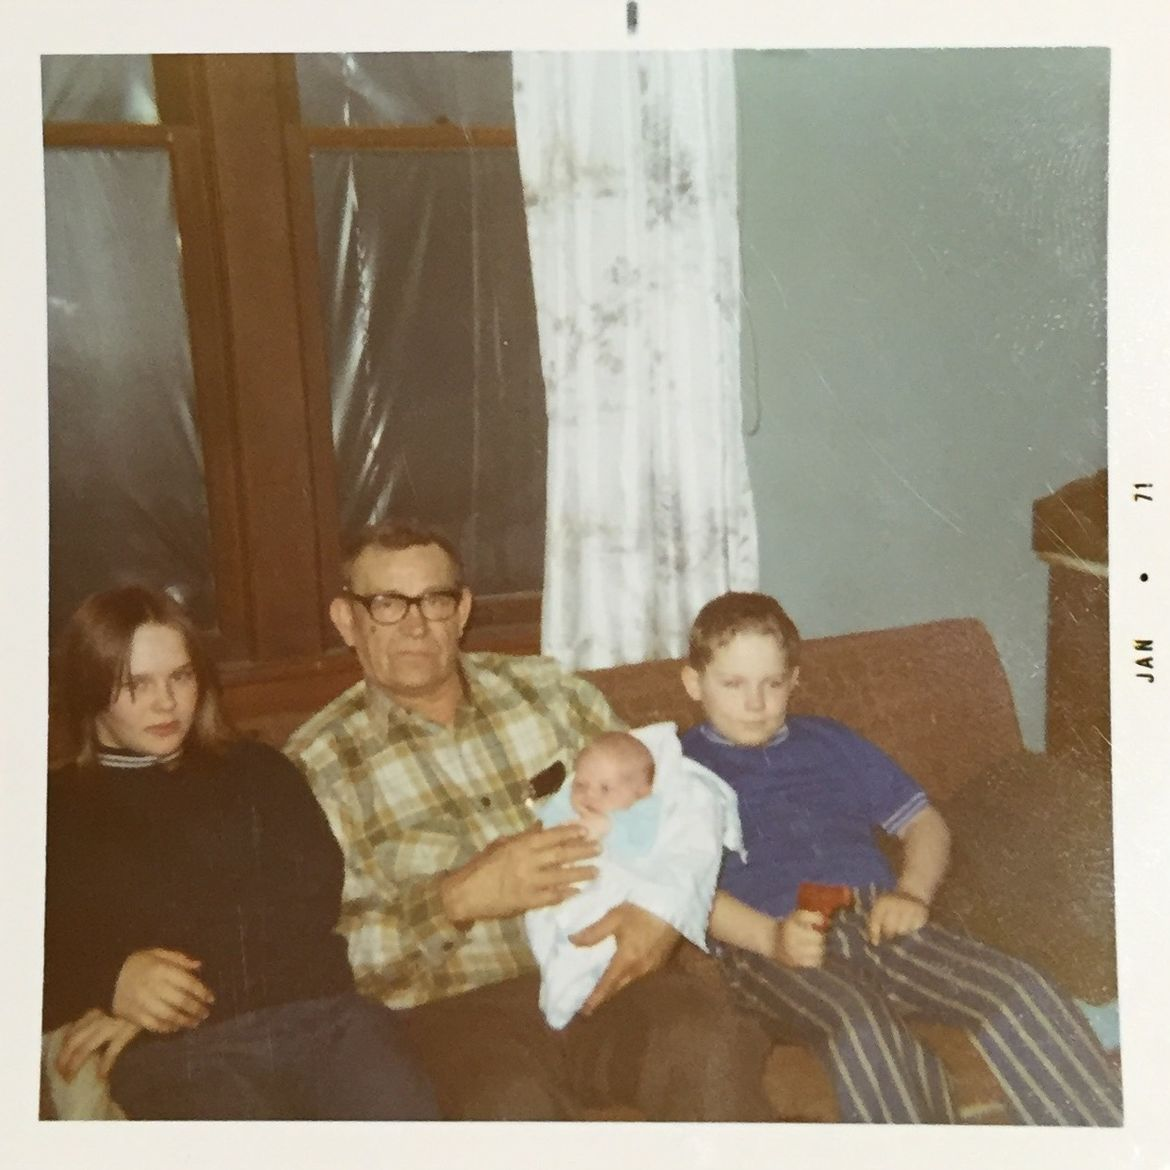 Cover Photo: left to right: Mary. Bee (held by her grandfather), Christopher. Courtesy of author